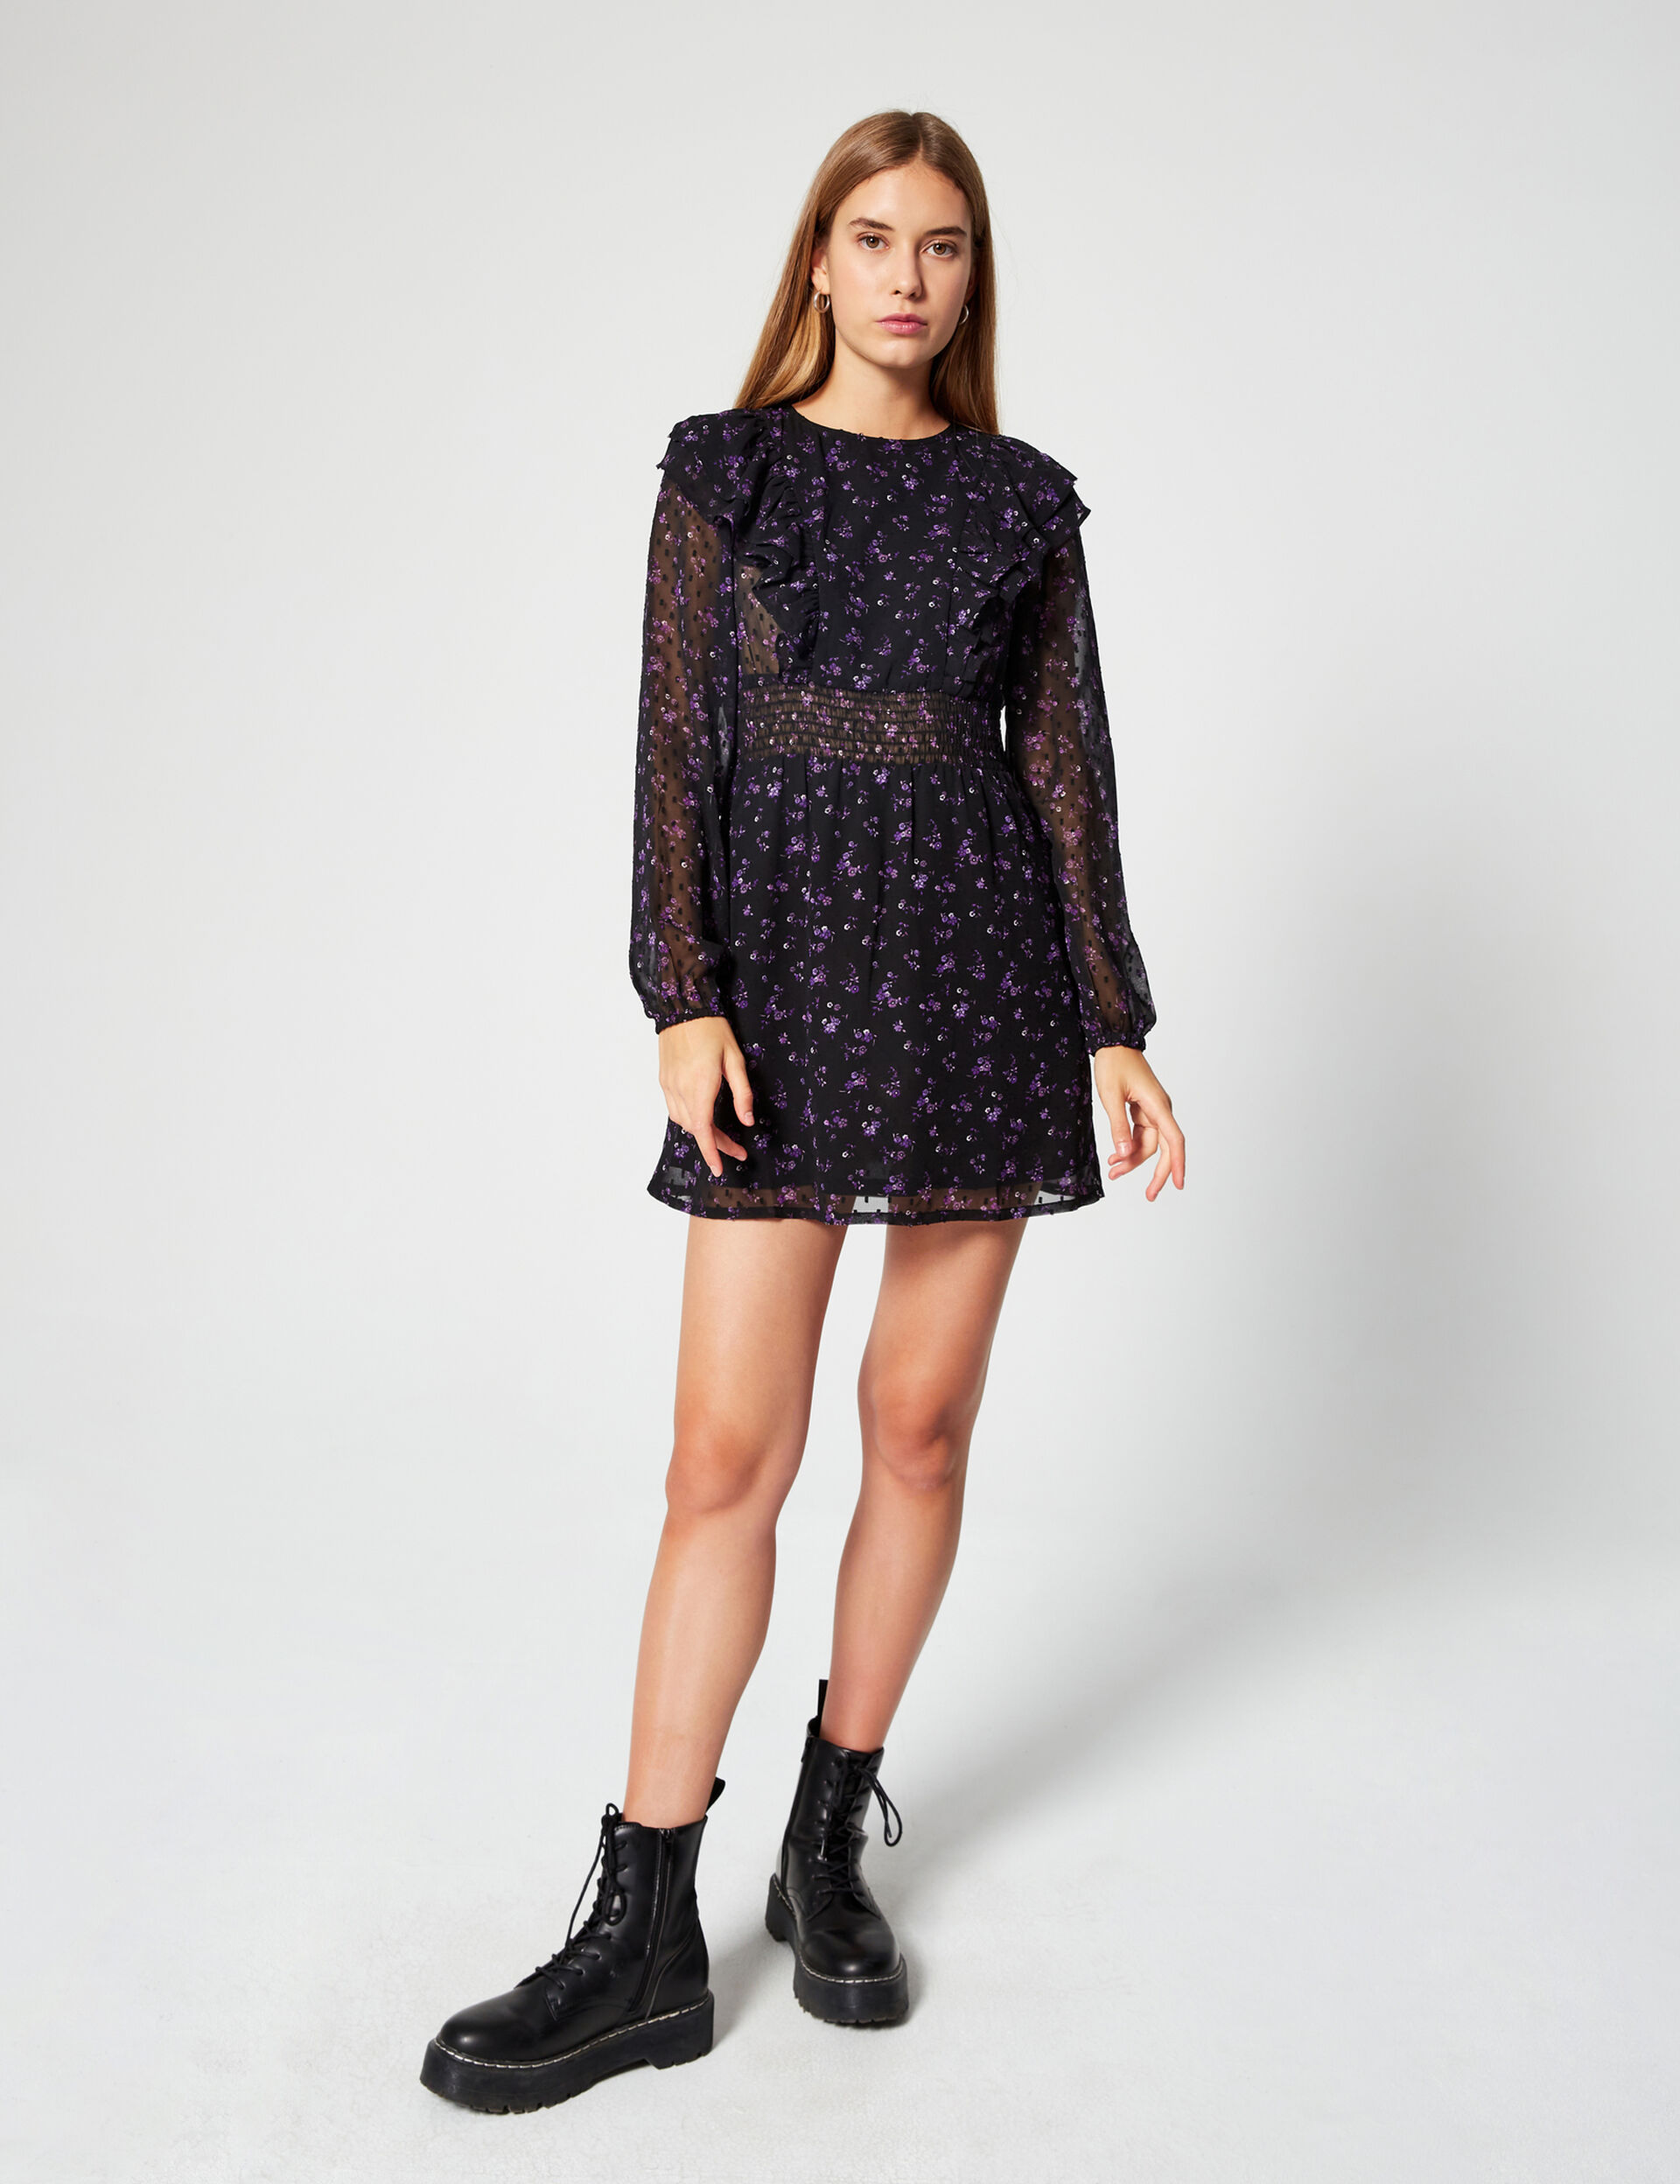 Floral-print dress with frills